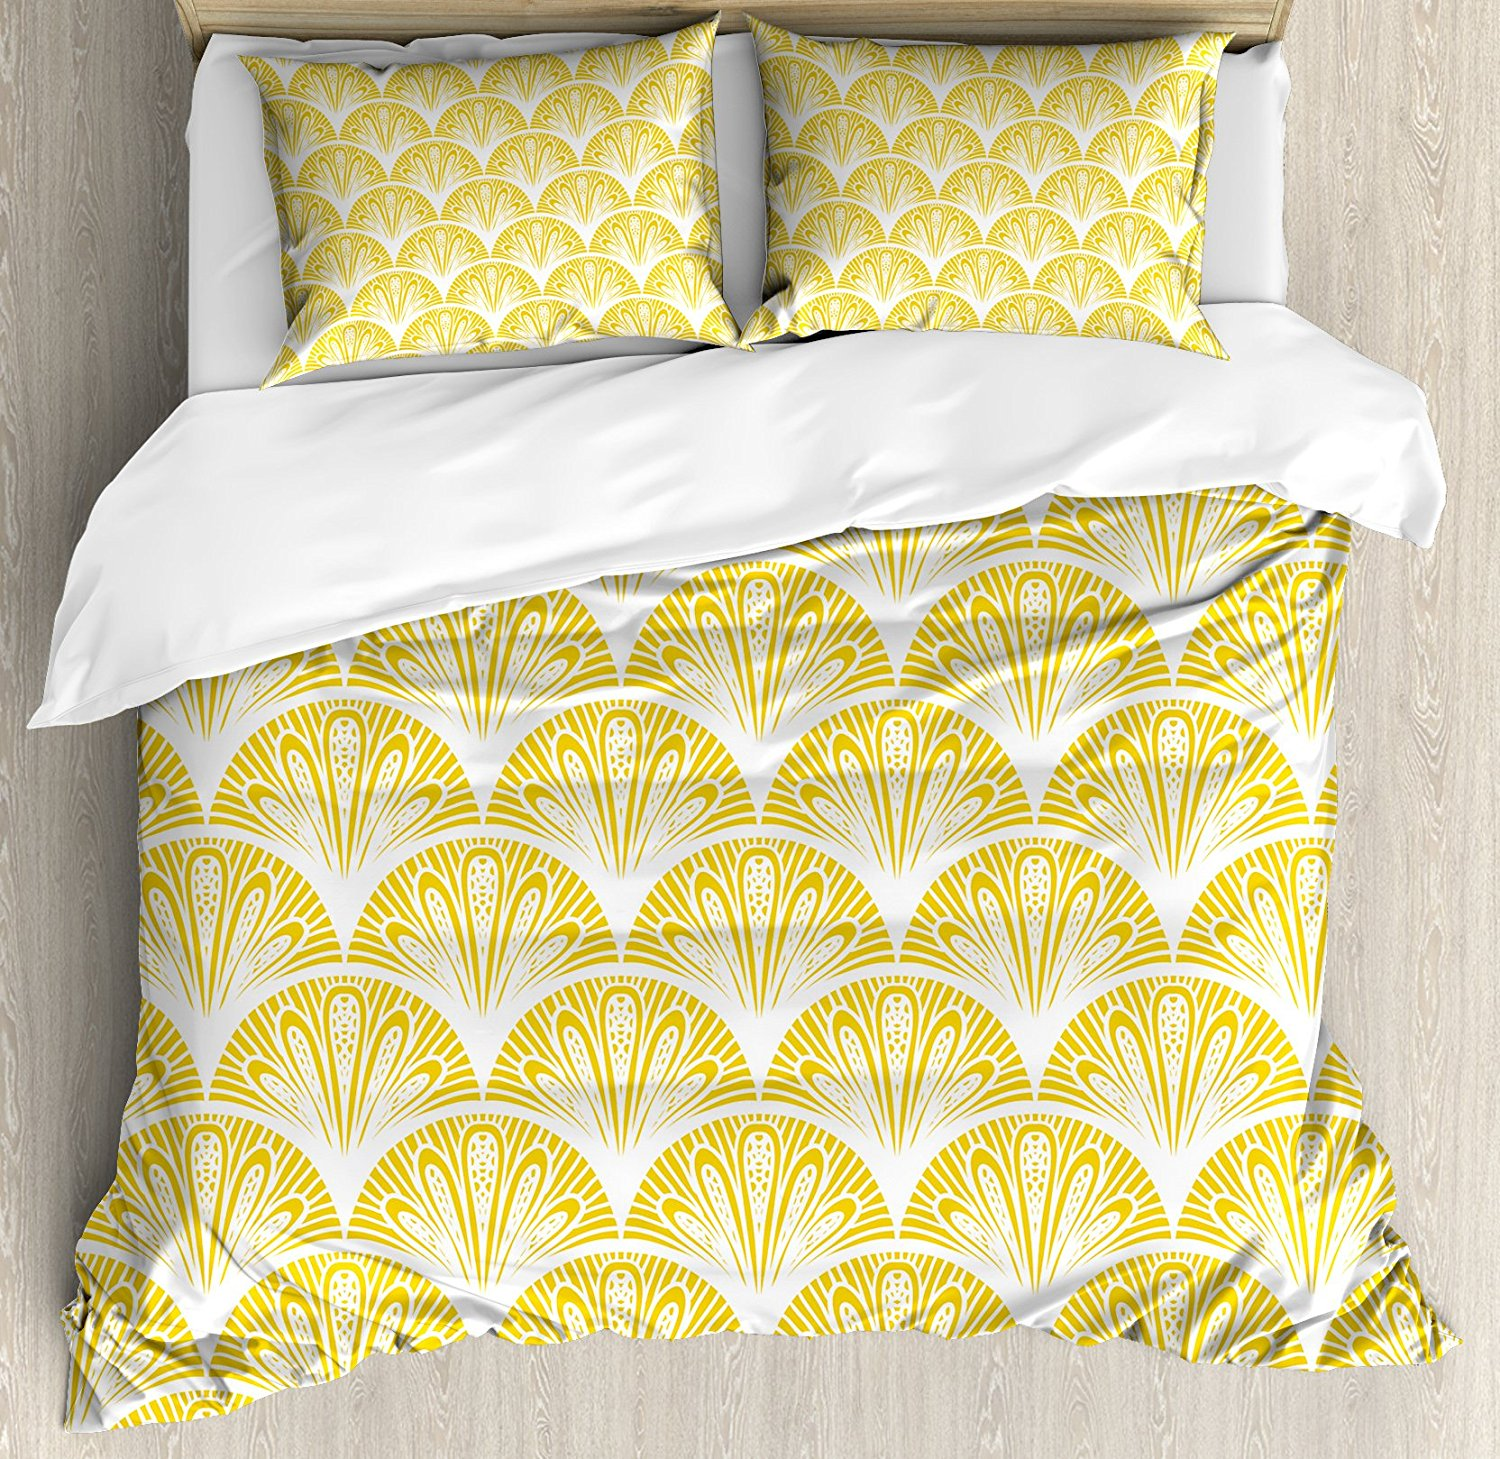 Yellow and White Duvet Cover Set Rounded Floral Motifs ...